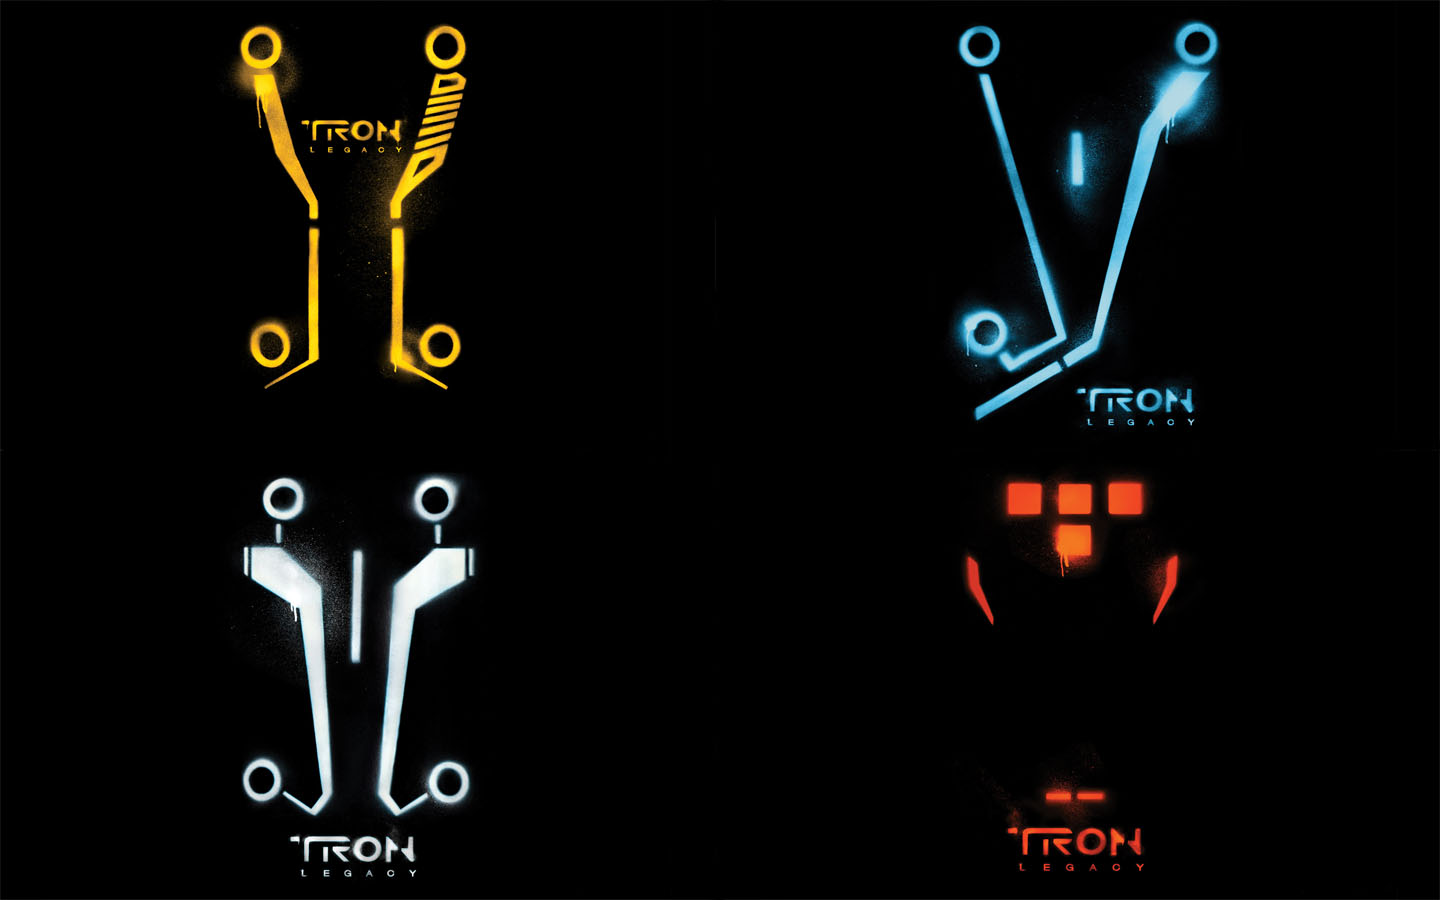 TRON: Legacy HD Wallpapers  Backgrounds  Wallpaper  1440x900